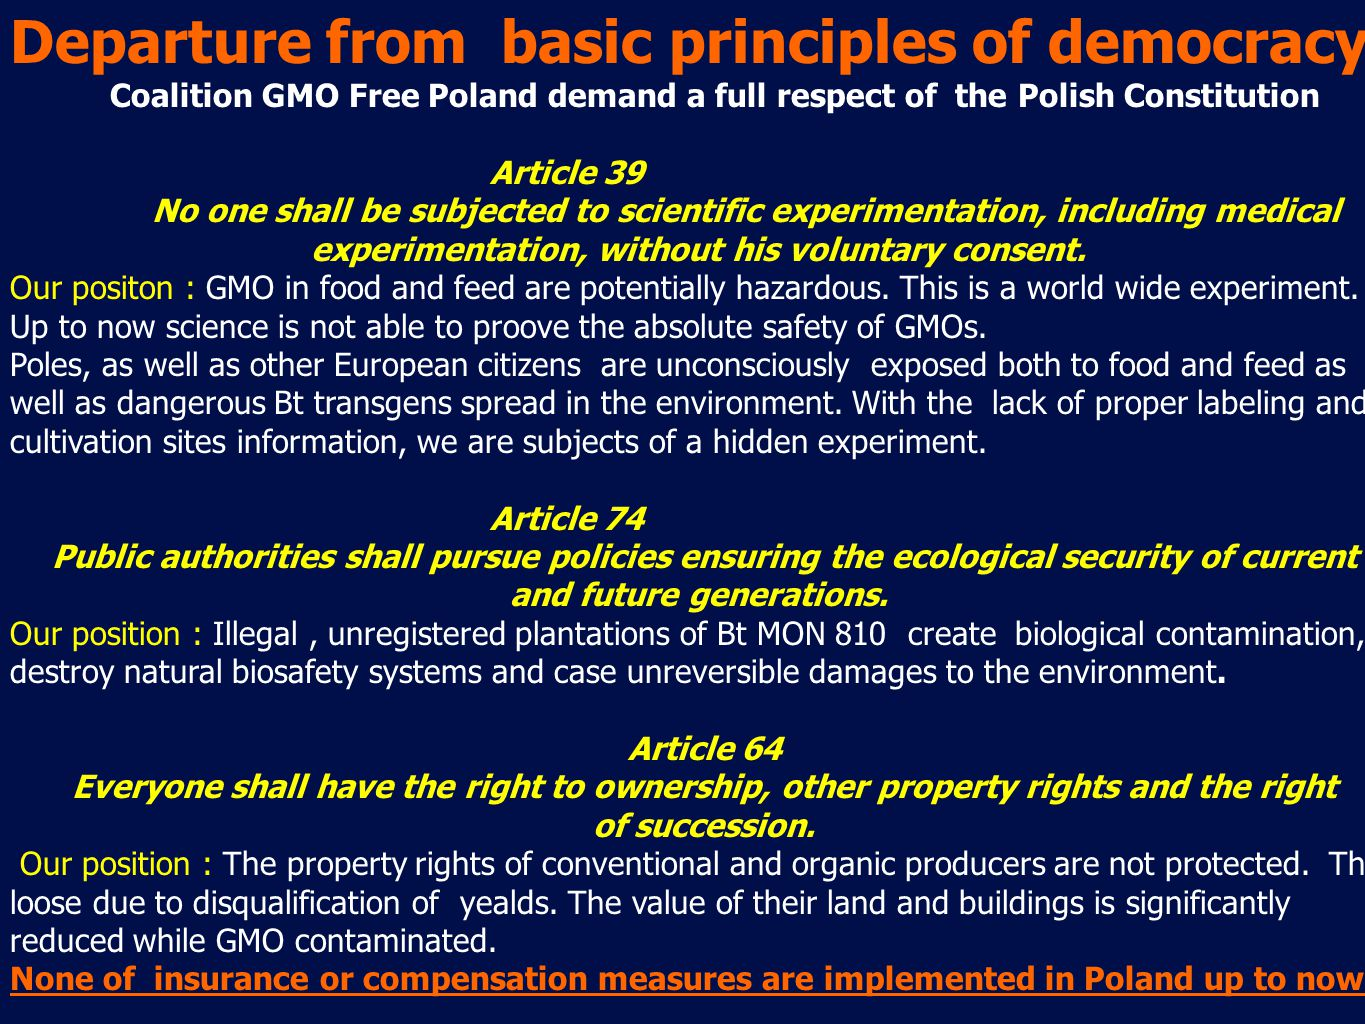 Departure from basic principles of democracy Coalition GMO Free Poland demand a full respect of the Polish Constitution Article 39 No one shall be subjected to scientific experimentation, including medical experimentation, without his voluntary consent.